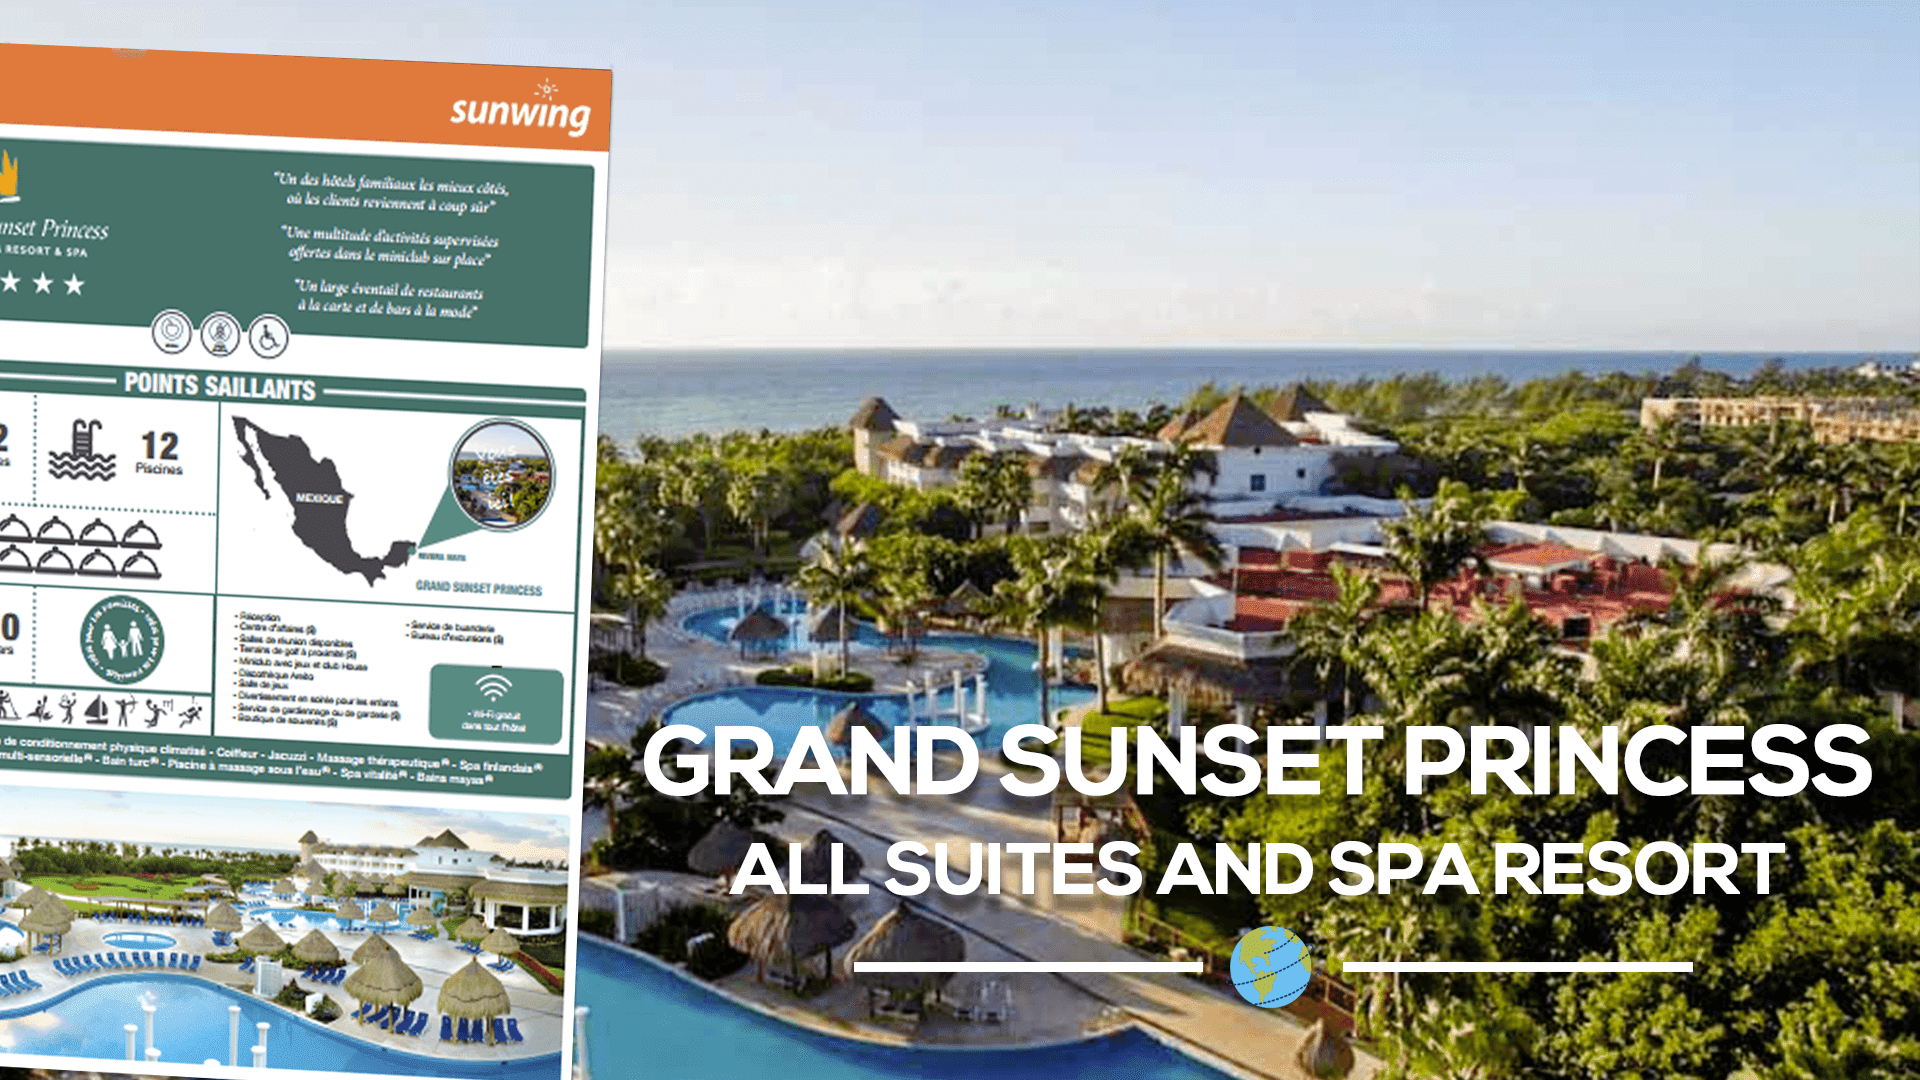 Fiches Htels Le Grand Sunset Princess All Suites and